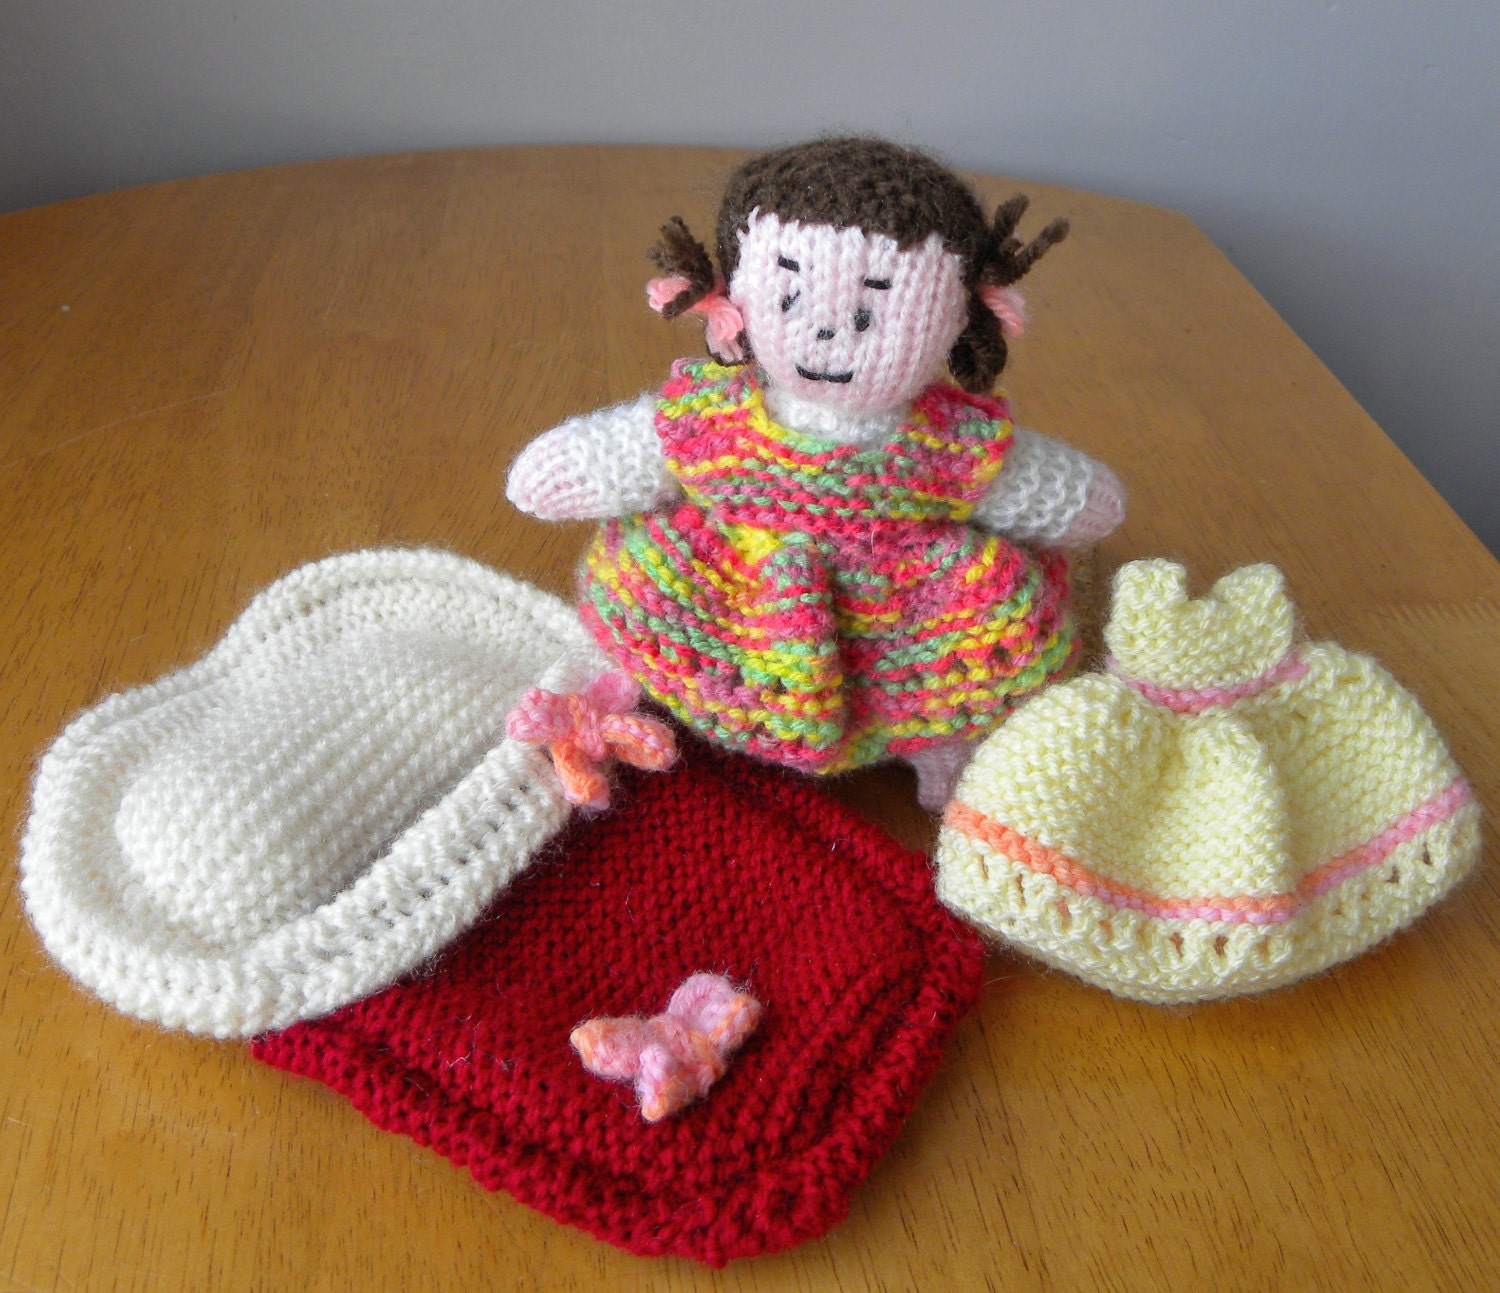 Knitting Patterns For Dolls Bedding : Hand Knitted Toy for Collectors Doll in Bed by PollysVintageBears